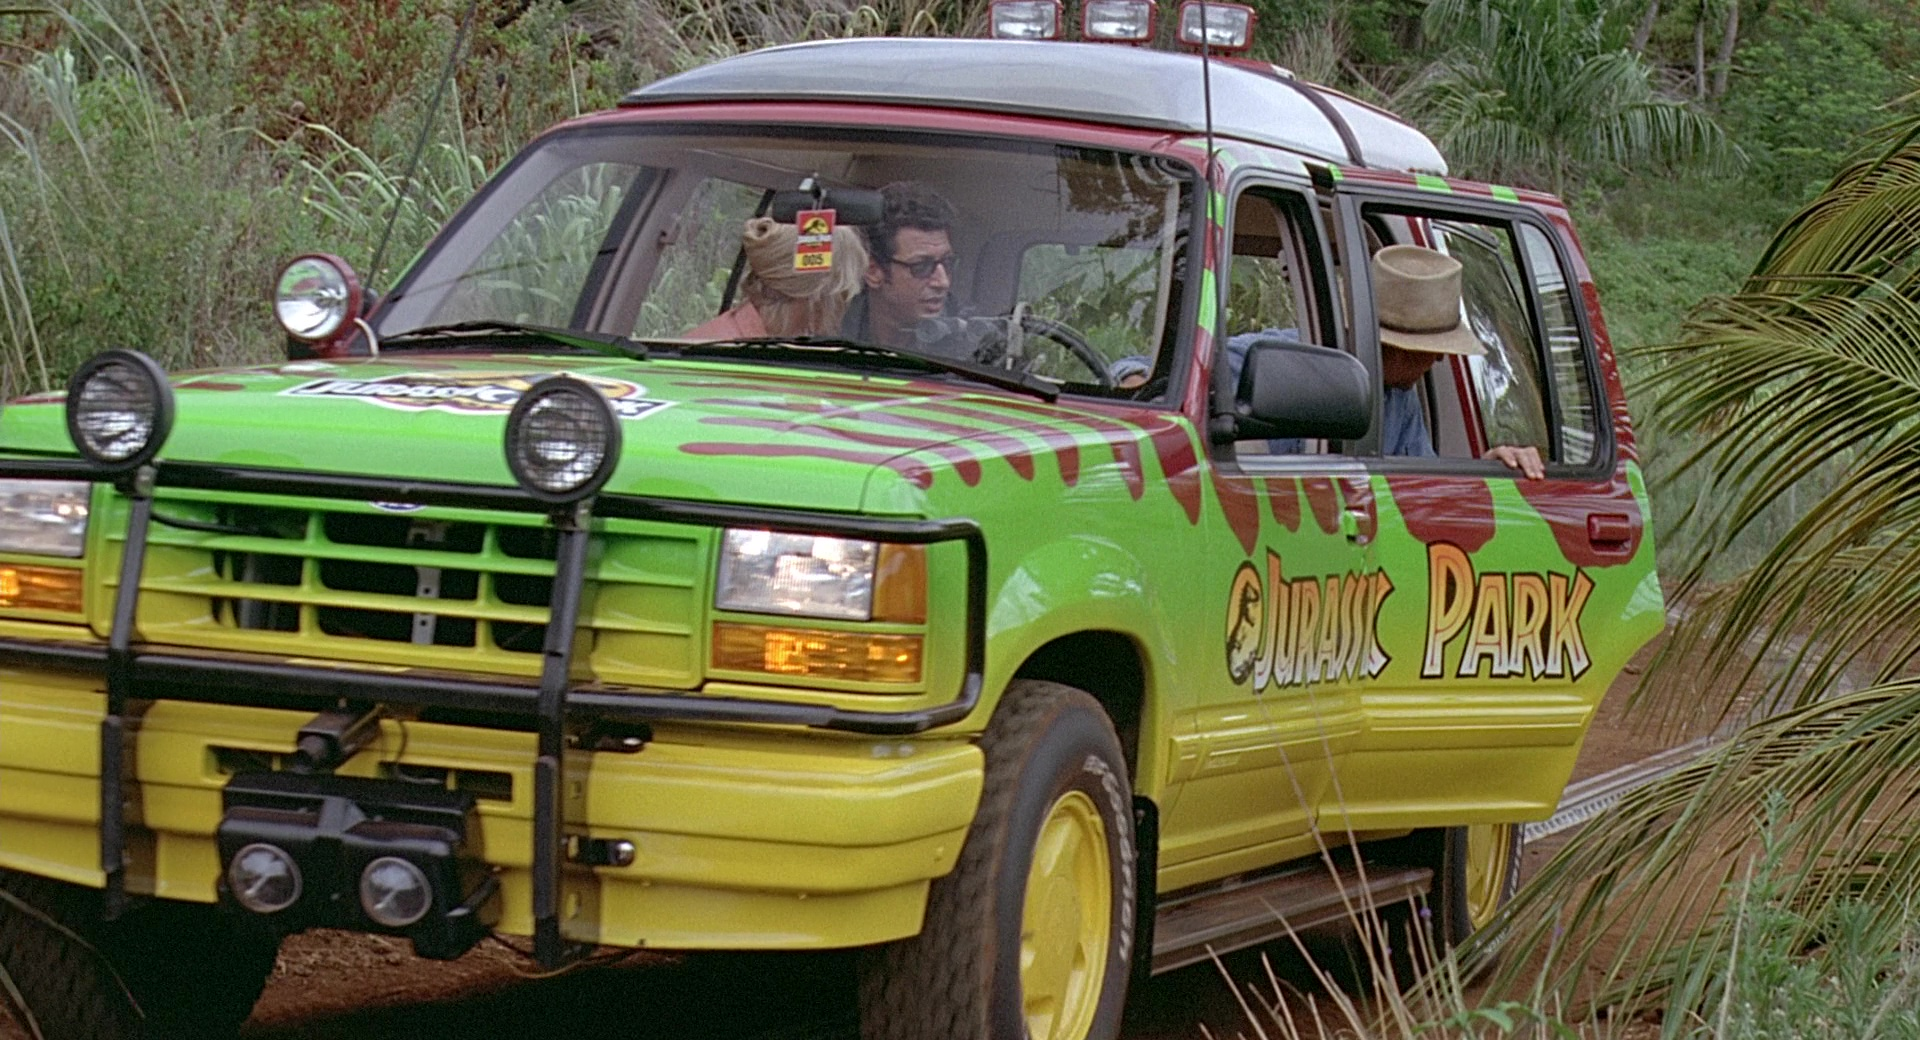 Ford Explorer Cars in Jurassic Park (1993) Movie